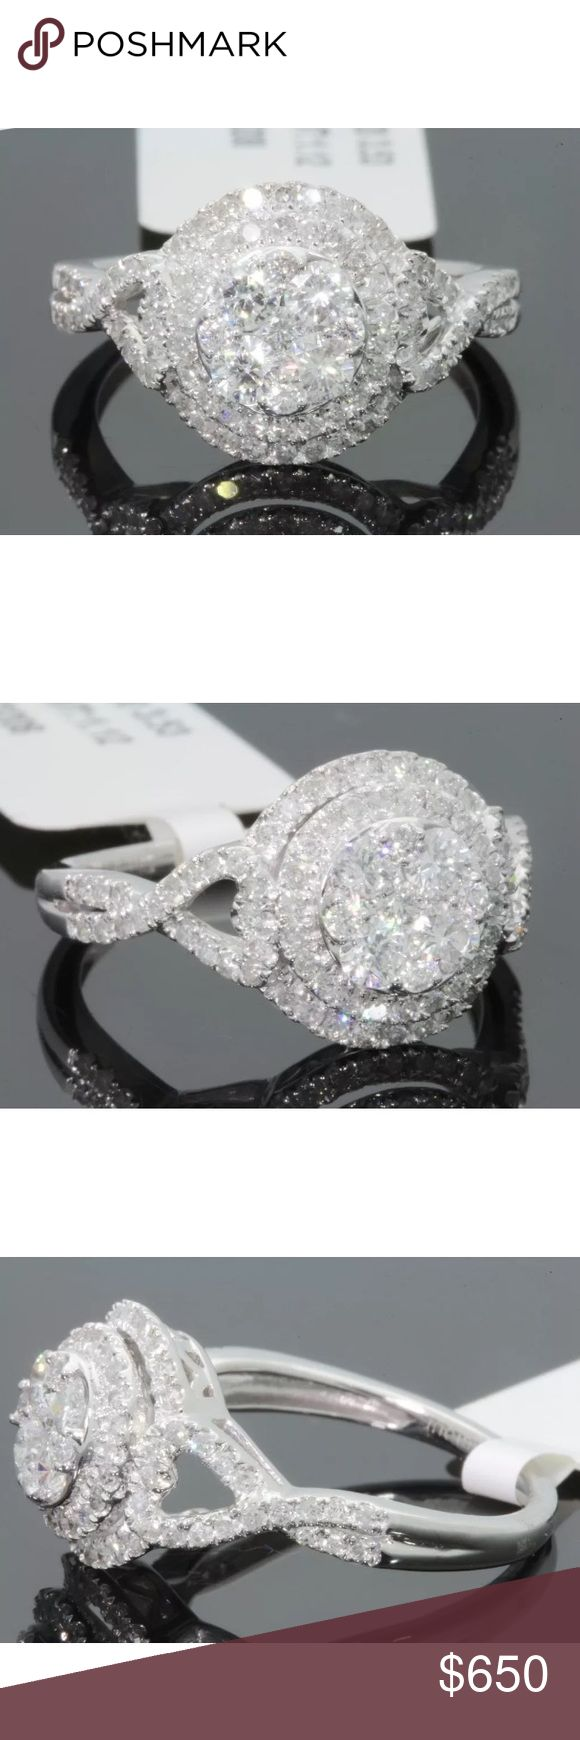 Amazing 1.10 carat 10k white gold diamond ring Amazing 1.10 carat 10k white gold diamond ring! Diamonds are full of sparkle! Retail over $3500!!! Jewelry Rings